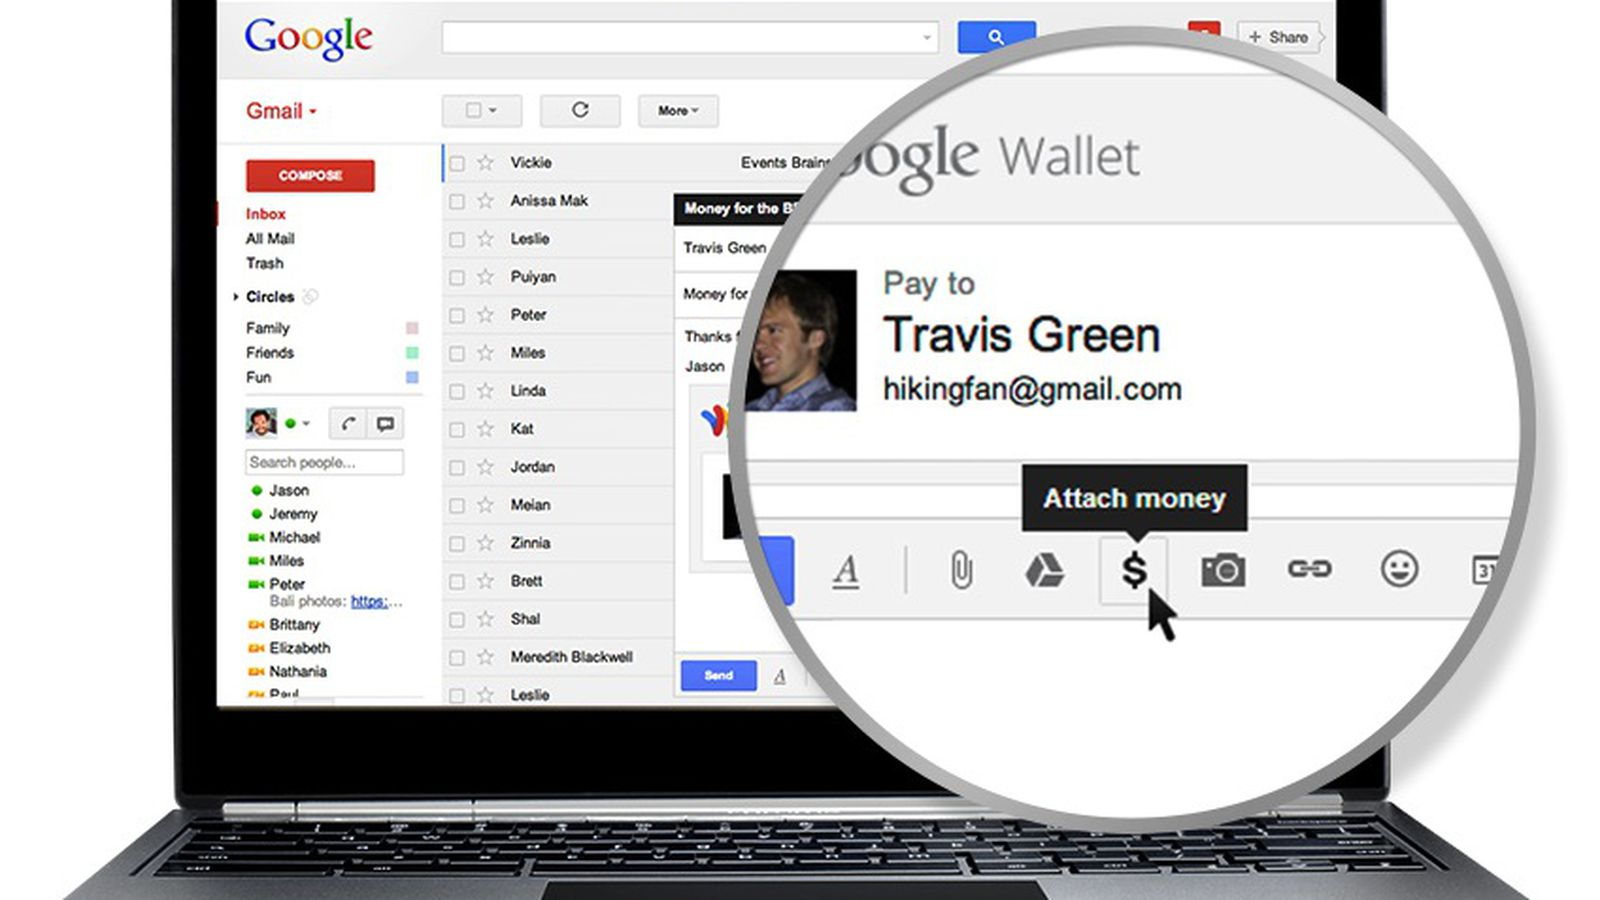 Google Wallet now lets you send money as an attachment in